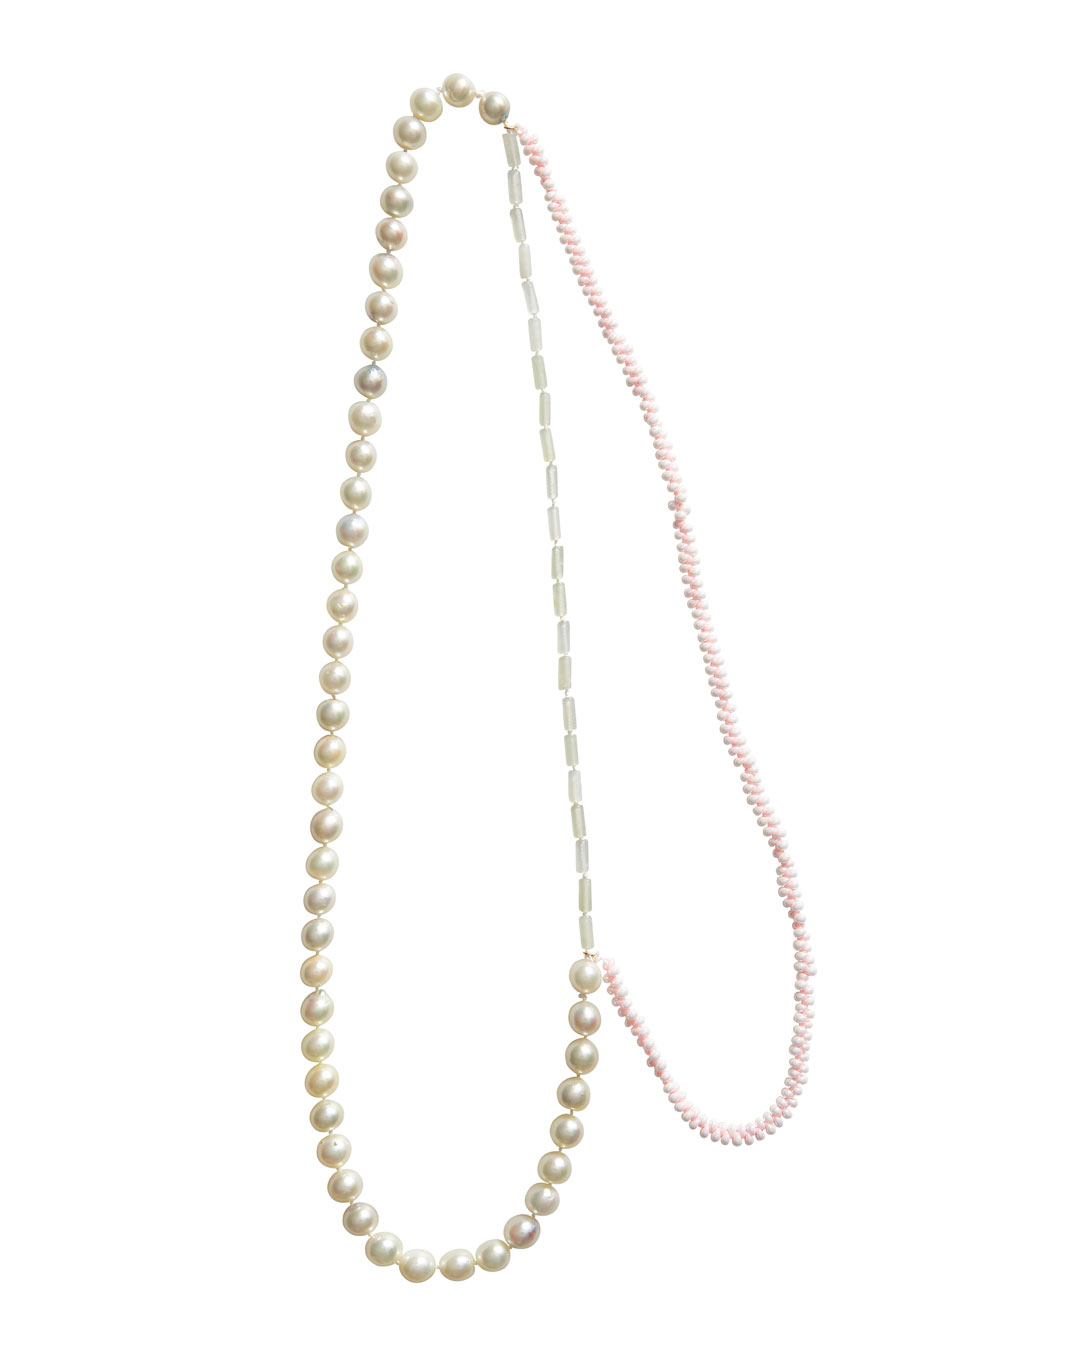 Annelies Planteijdt, Mooie stad - Roze water (Beautiful City - Pink Water), 2020, necklace; Akoya pearls, jade, Japanese glass beads, gold, yarn, 630 mm, €2725